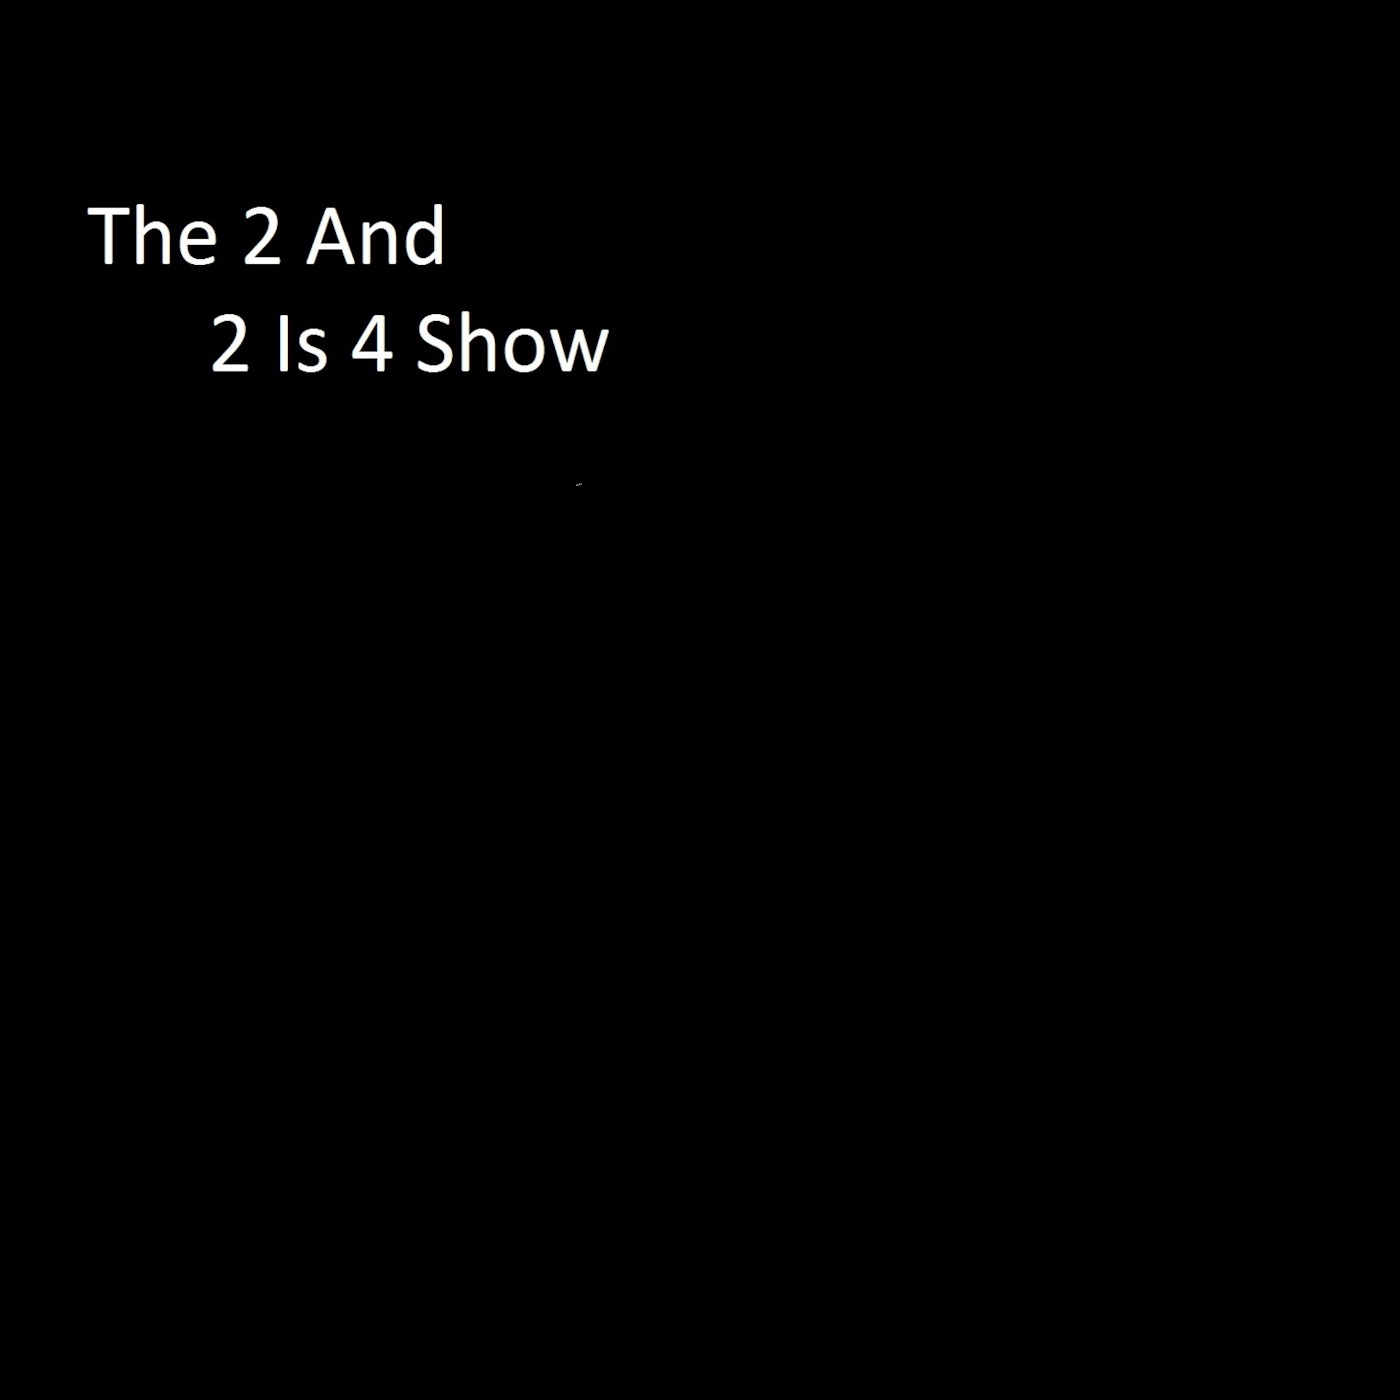 2and2is4show